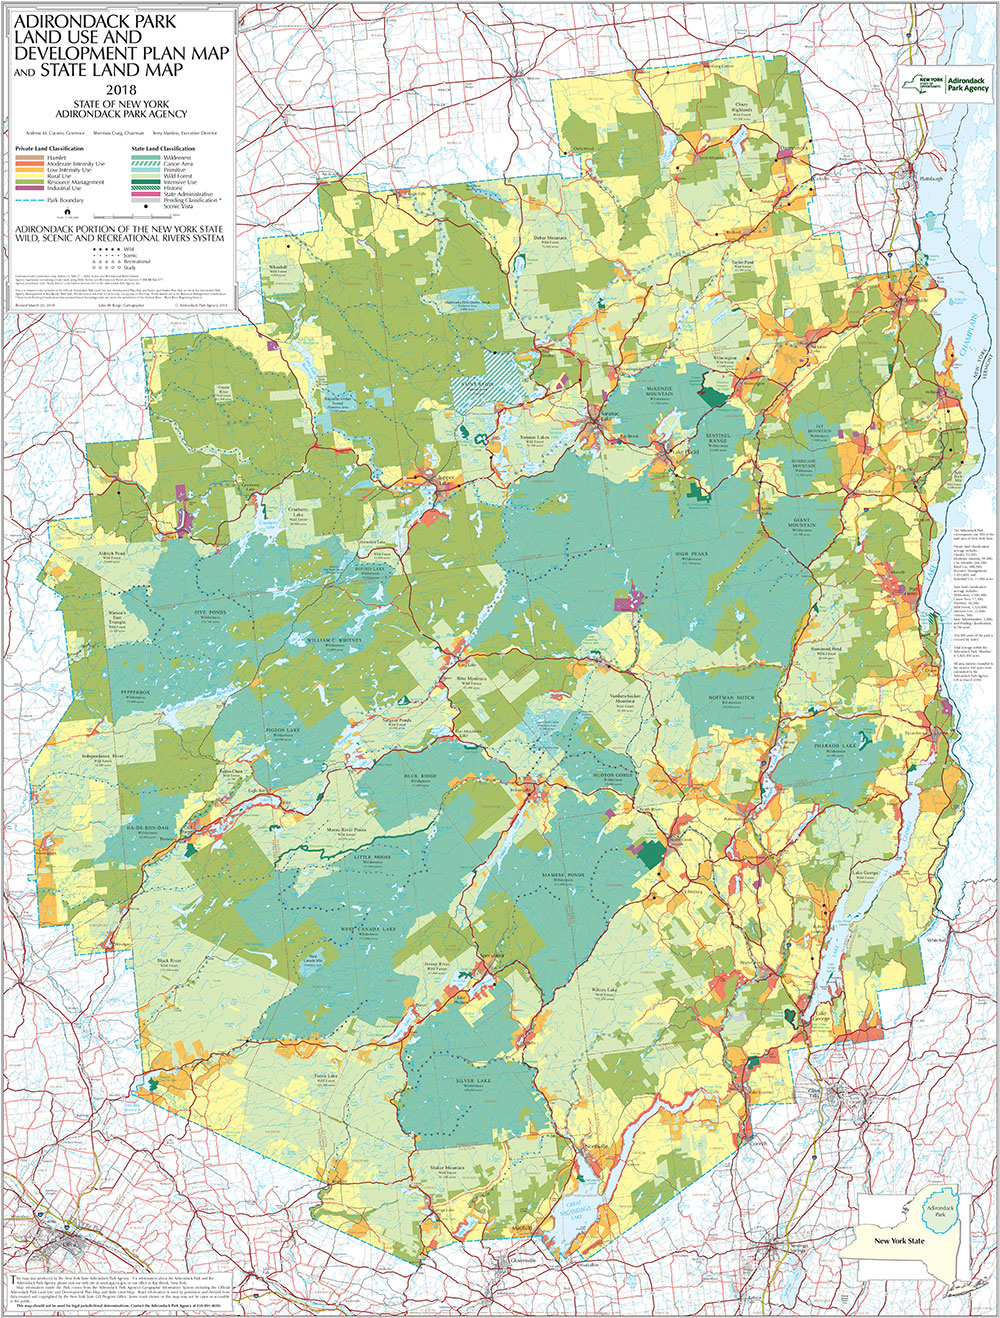 Adirondack Park Agency Maps and GIS on excel download, mac download, animation download, linux download, python download,